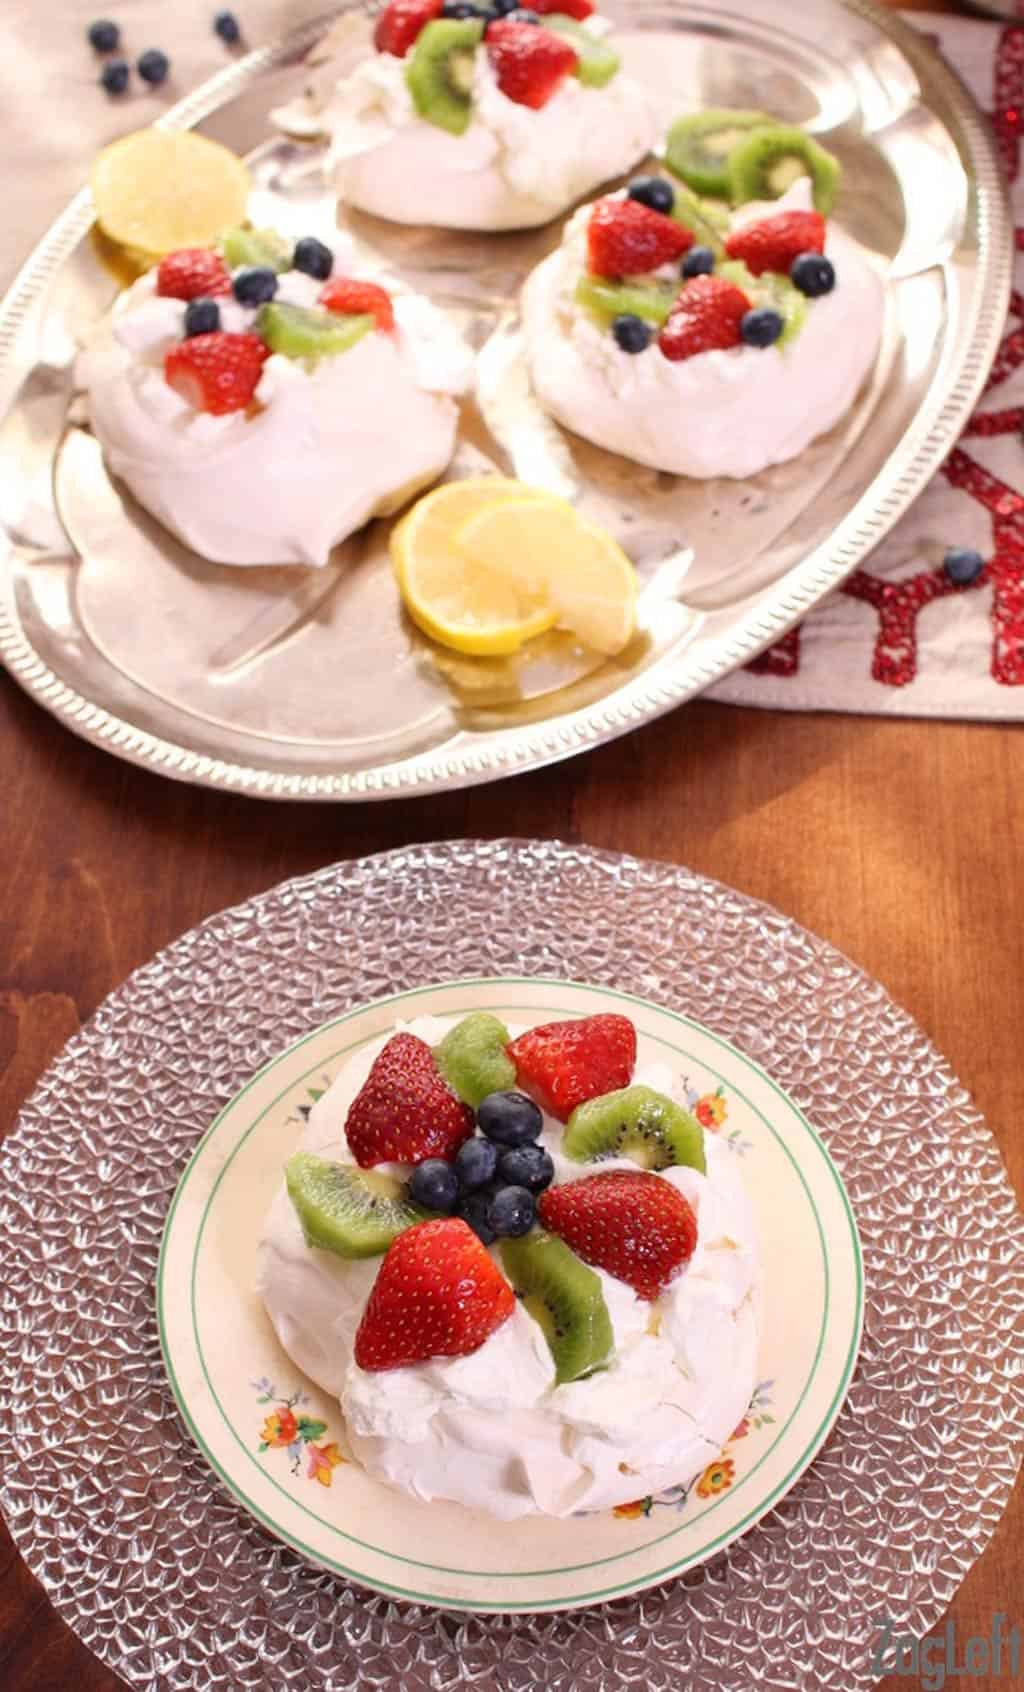 Overhead view of a Mini Pavlova topped with whipped cream, sliced strawberries, kiwis, and blueberries on a plate next to a tray of three mini pavlovas